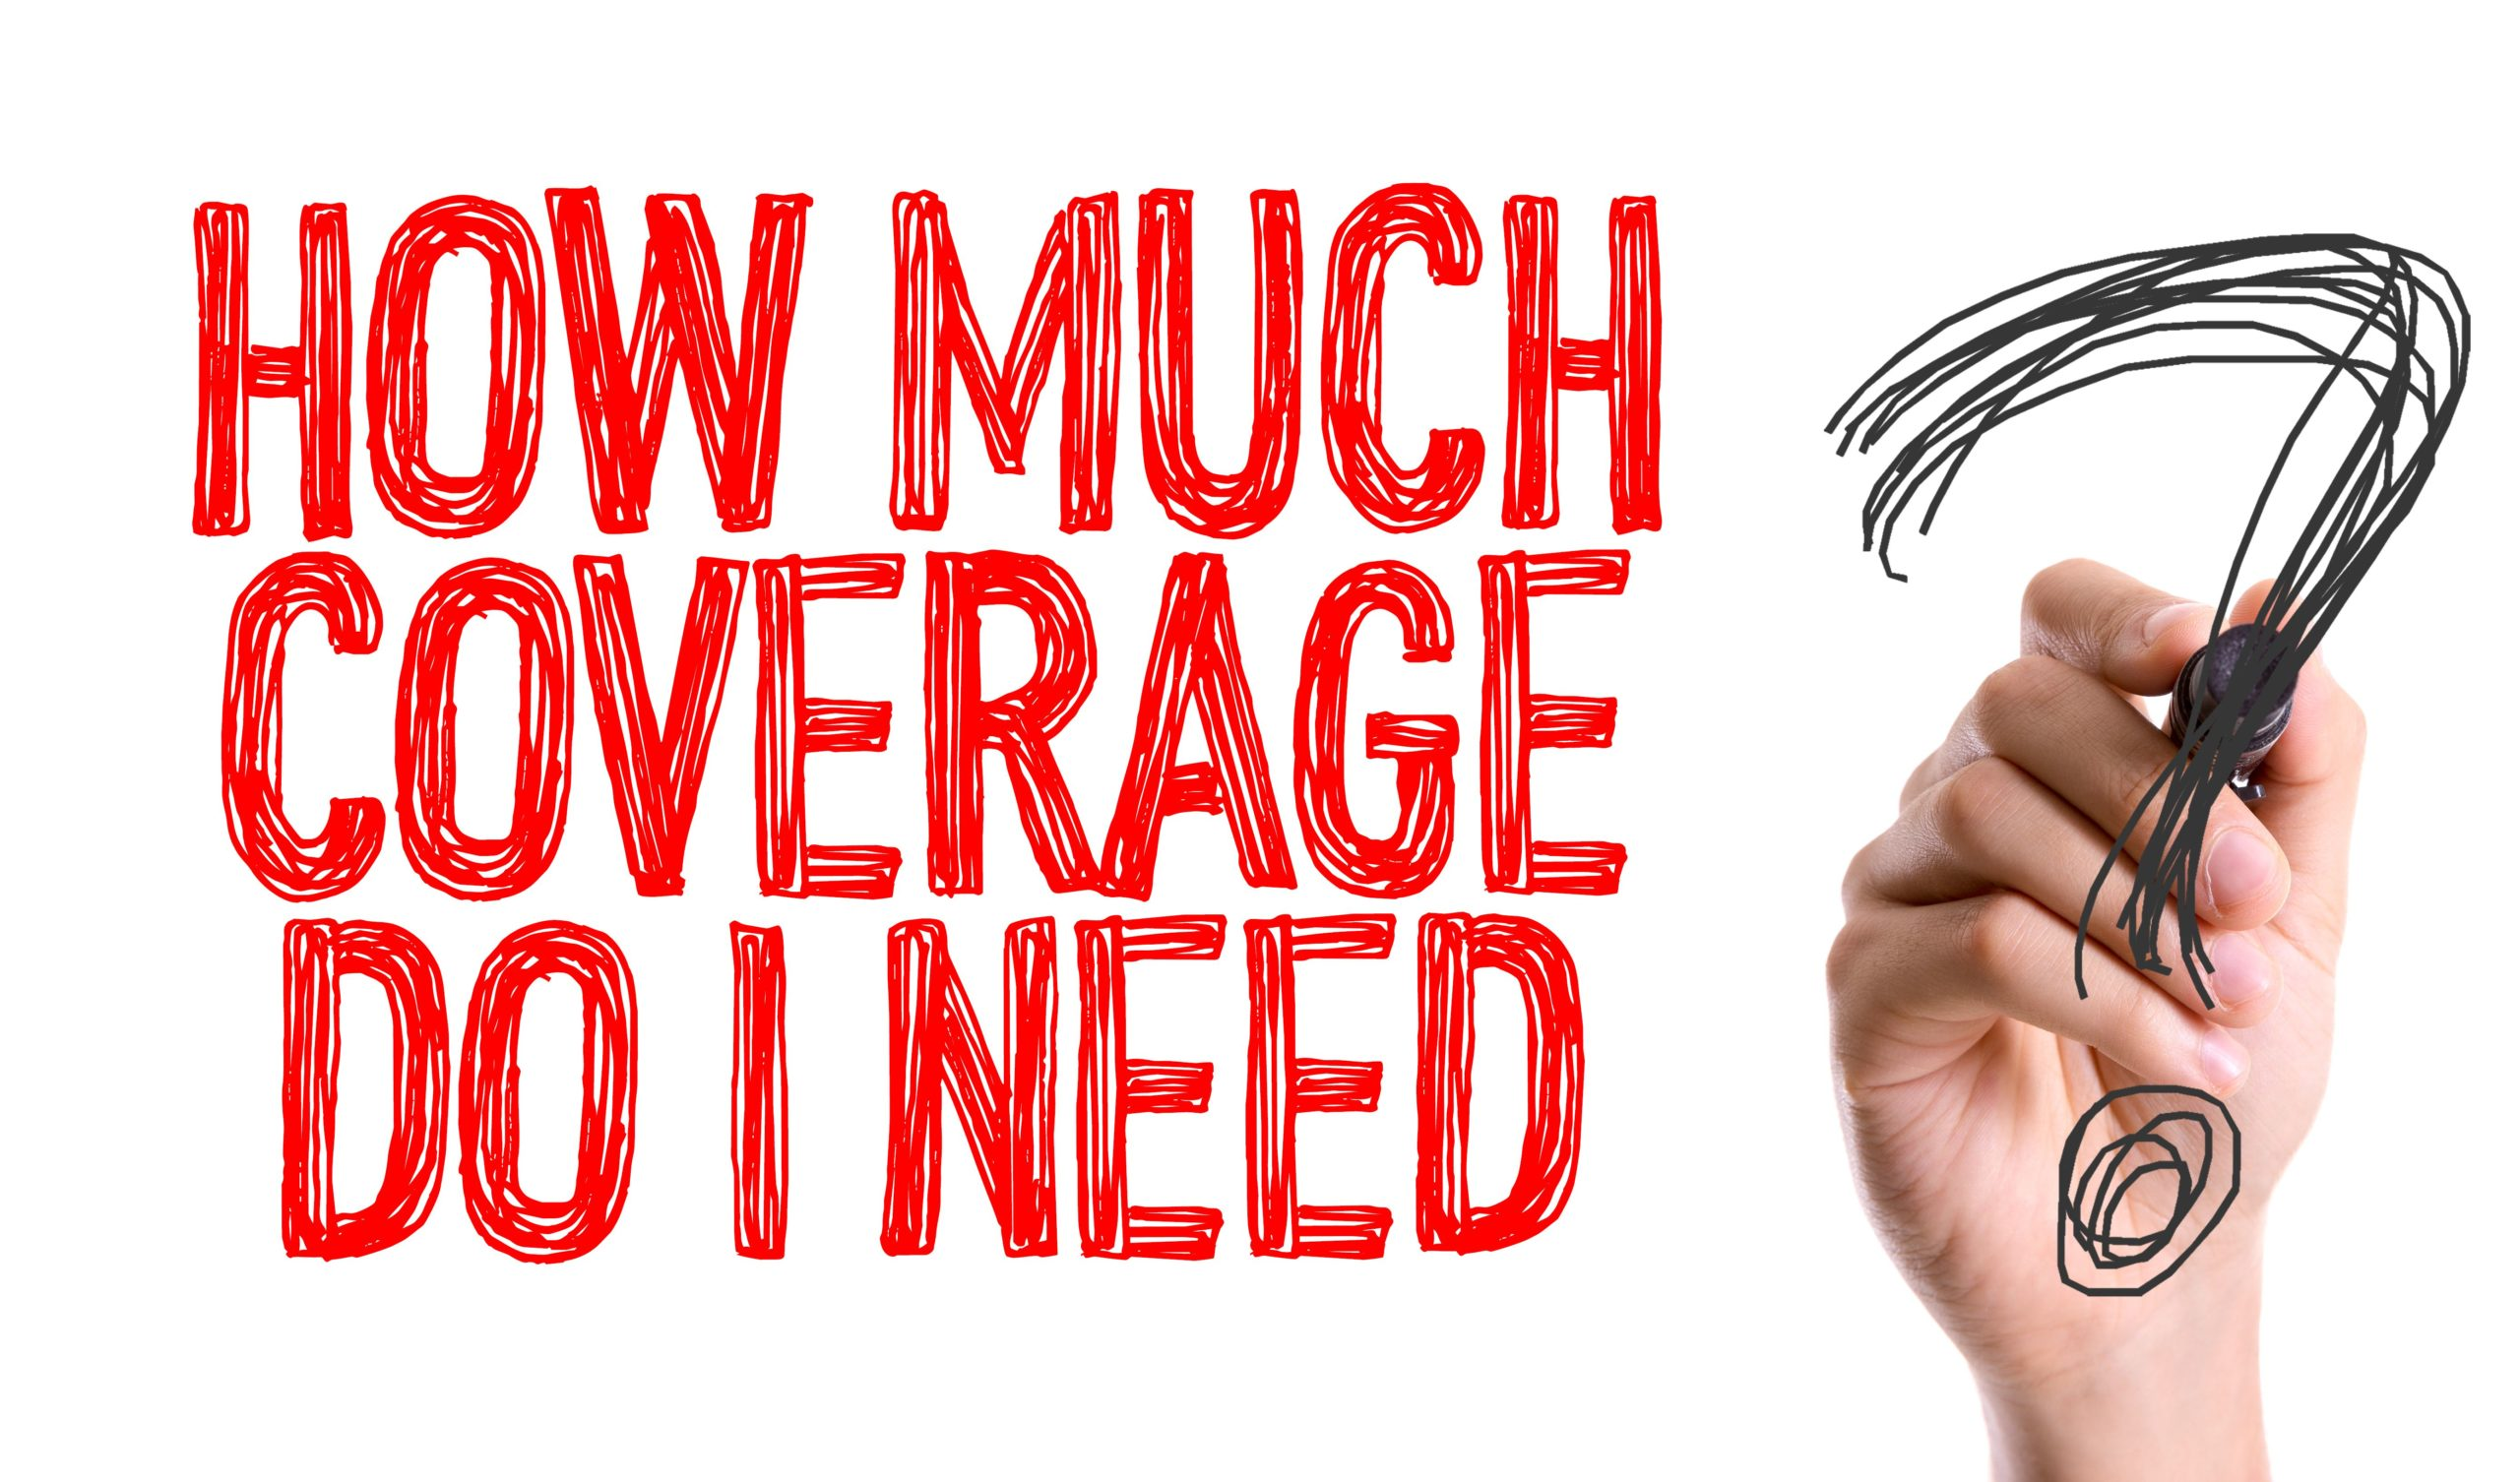 Health Insurance – How to choose the right cover limit?